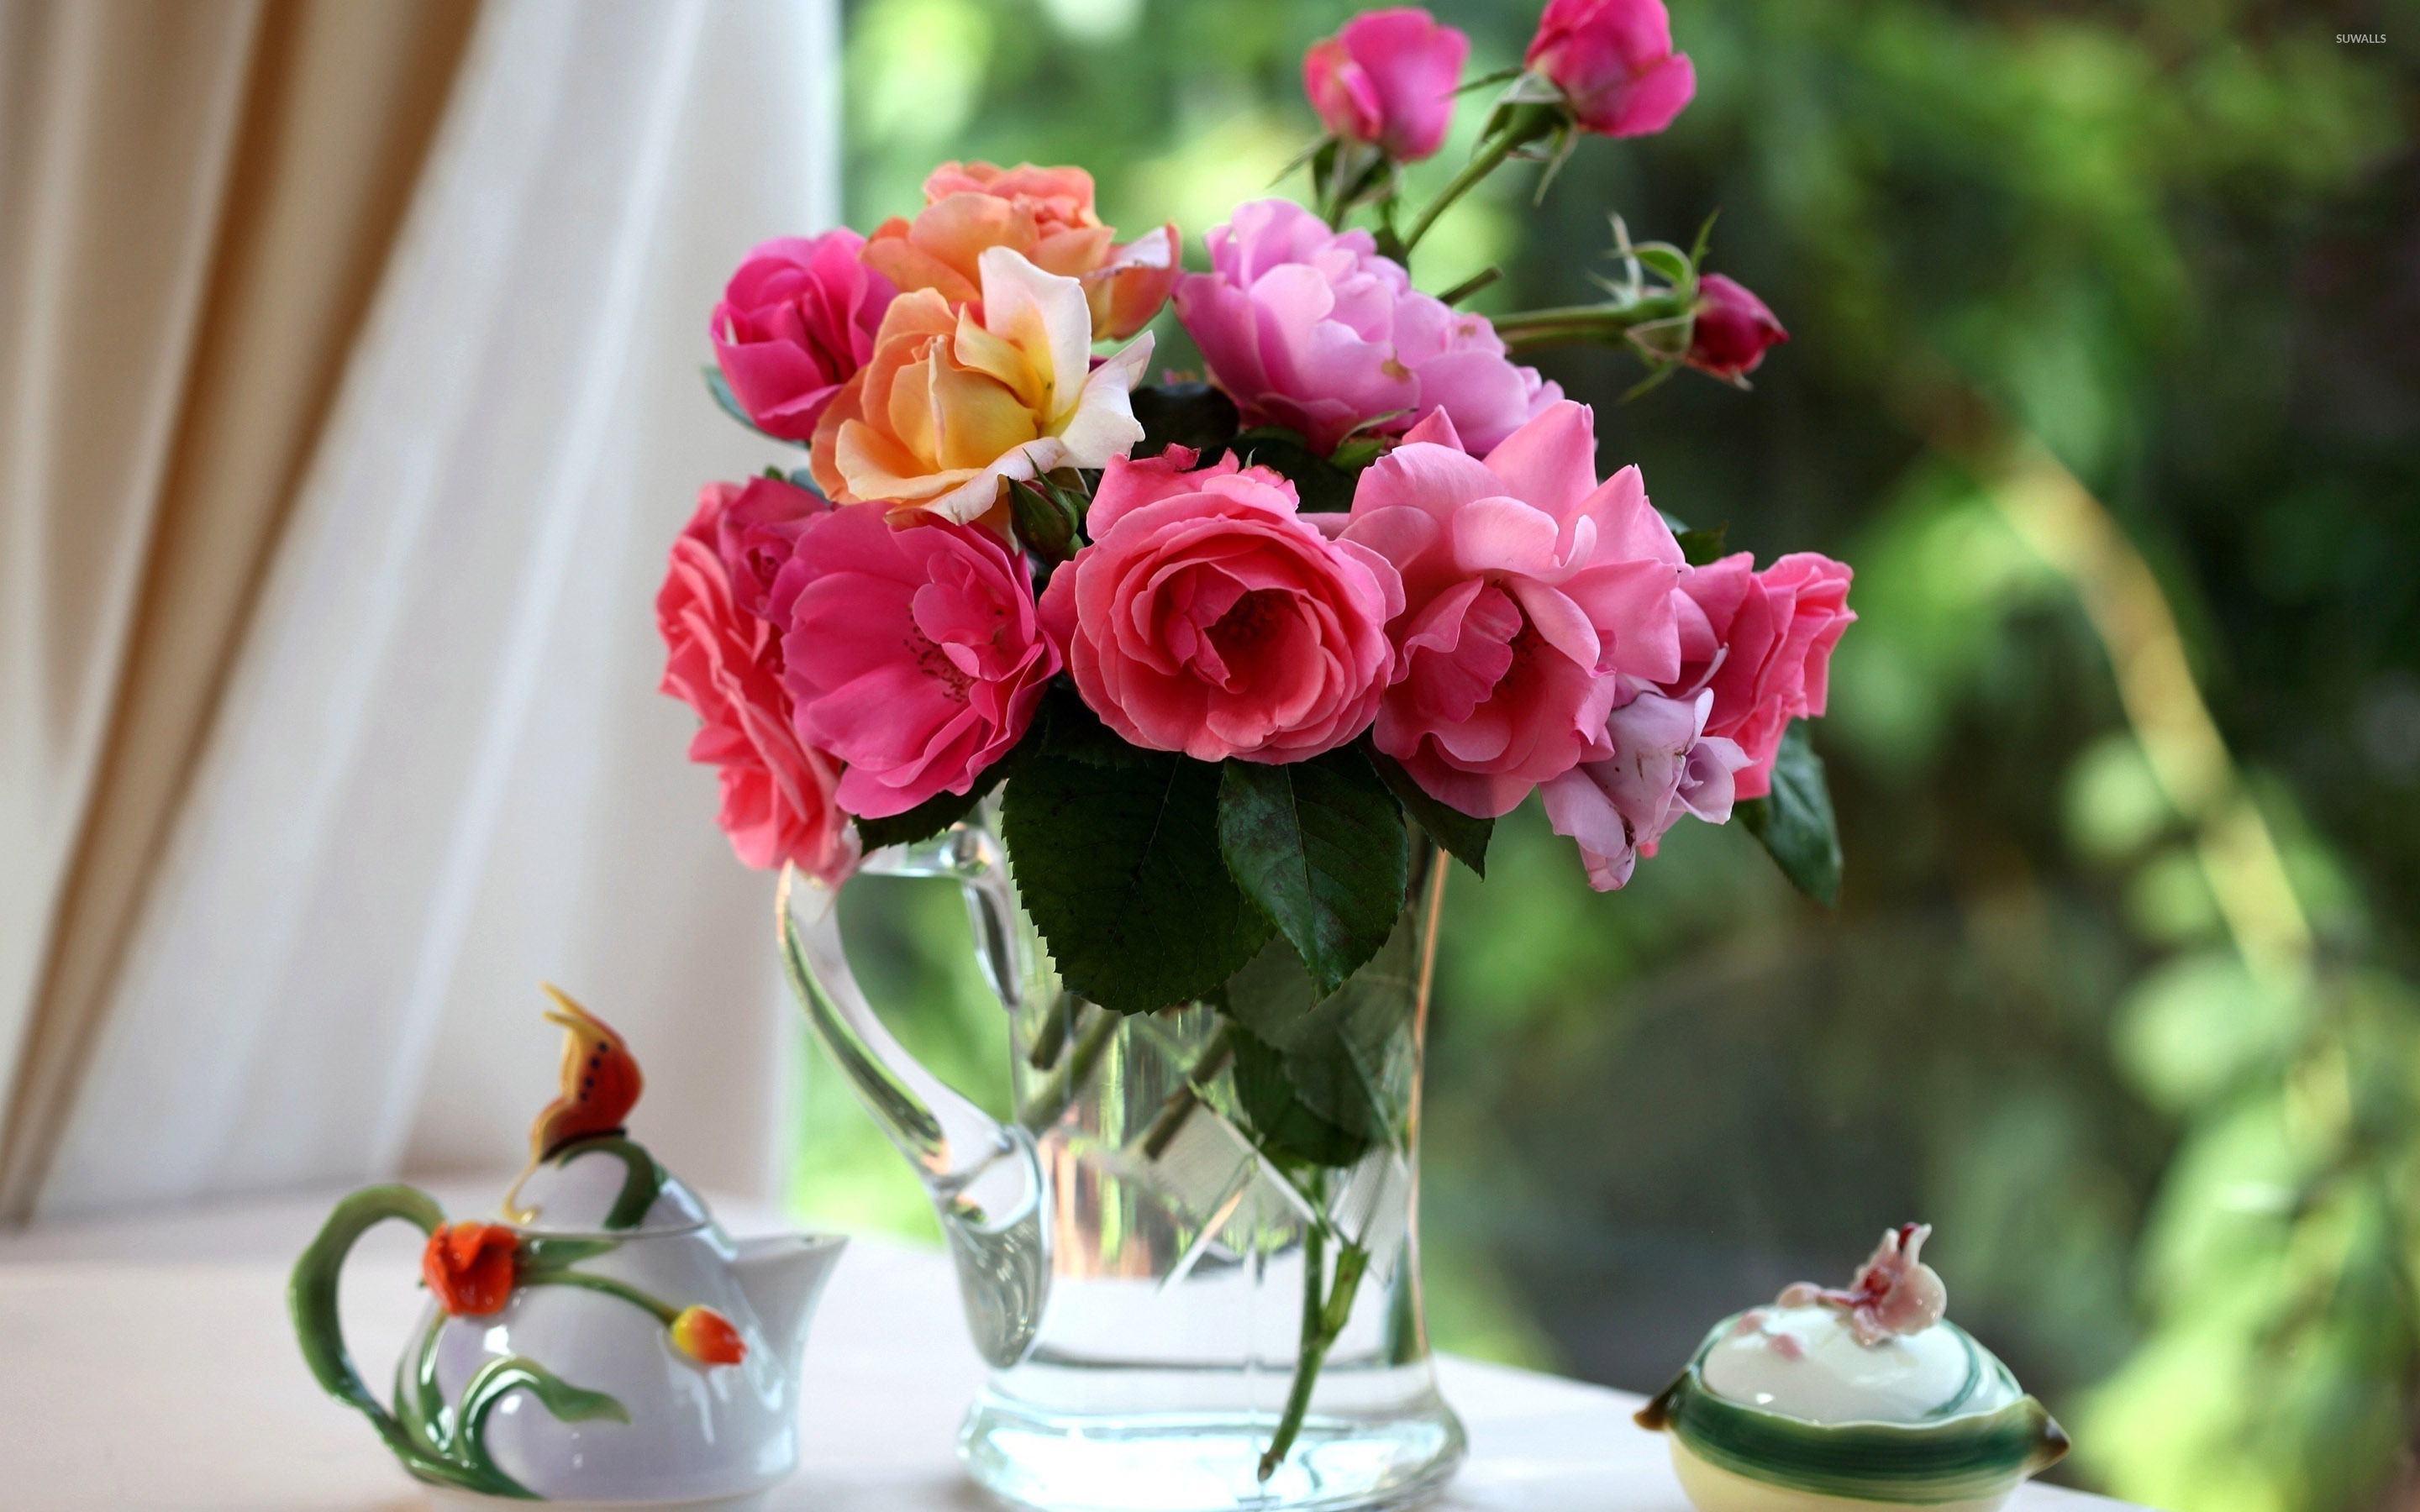 Roses in the vase on the morning tea table wallpaper flower roses in the vase on the morning tea table wallpaper floridaeventfo Choice Image